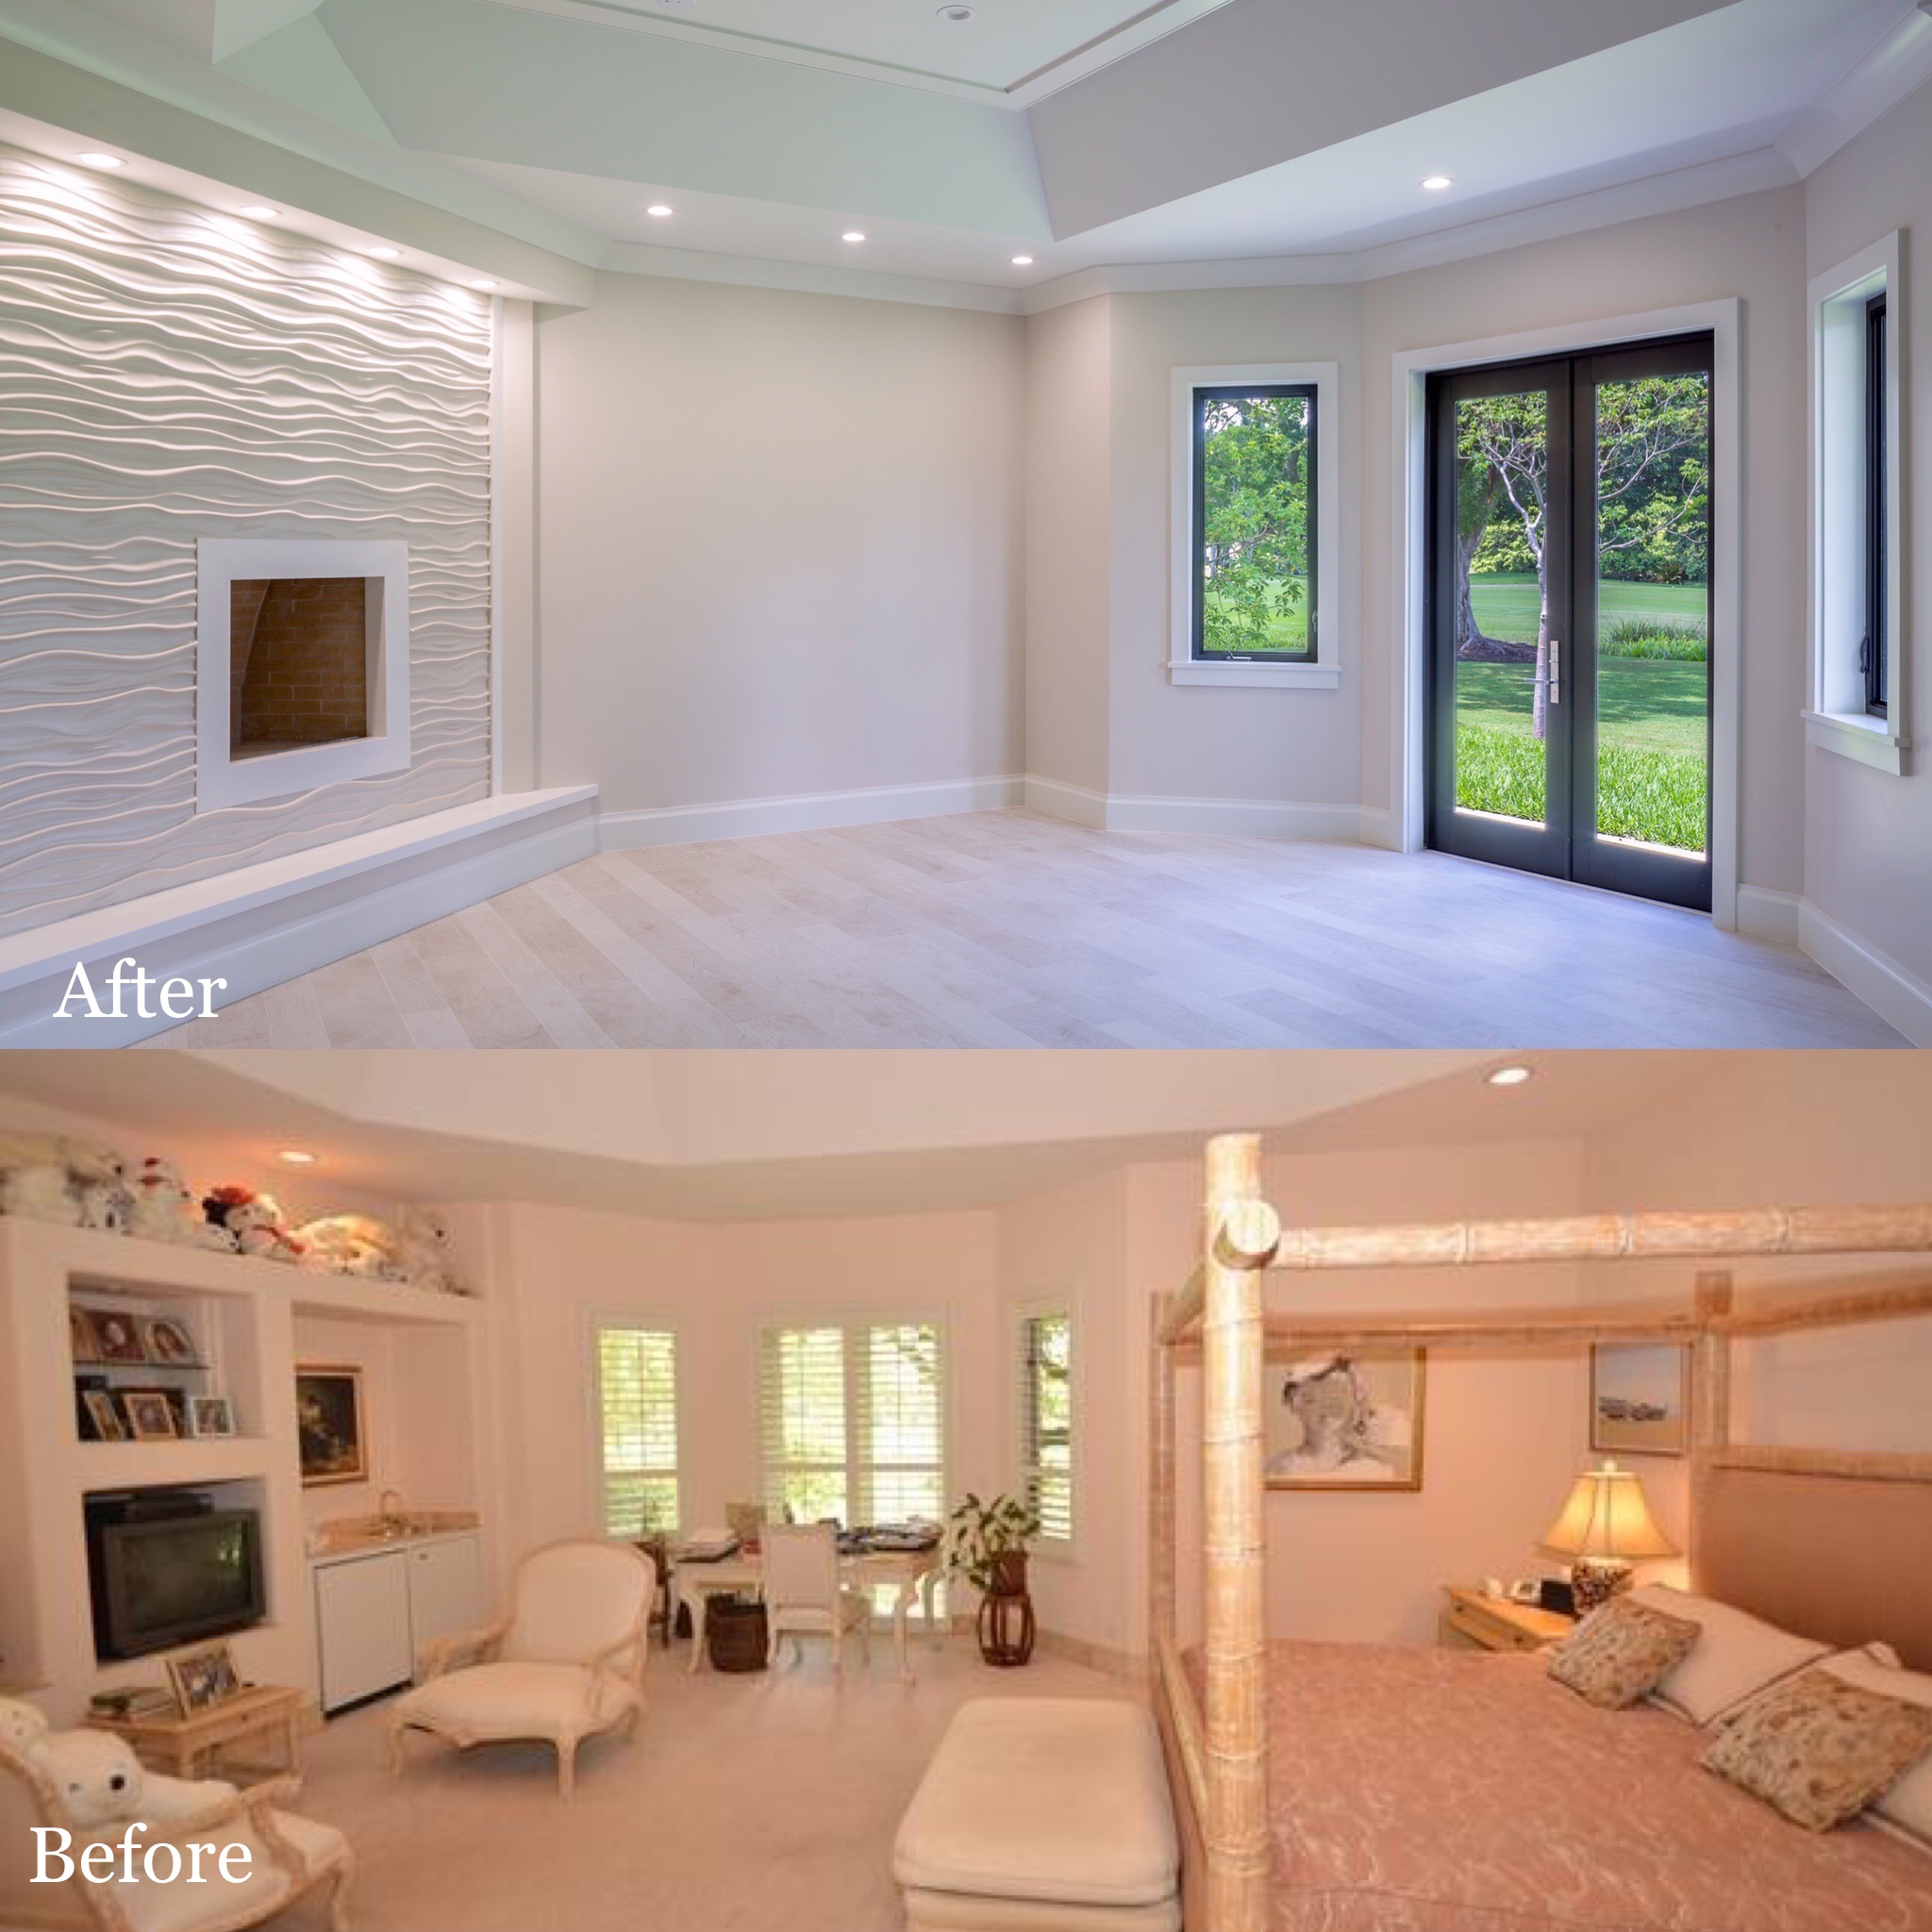 mag real estate & development construction before & after general contractor builder renovation south florida boca raton new custom luxury home for sale interior design st. andrews country club 6.jpg